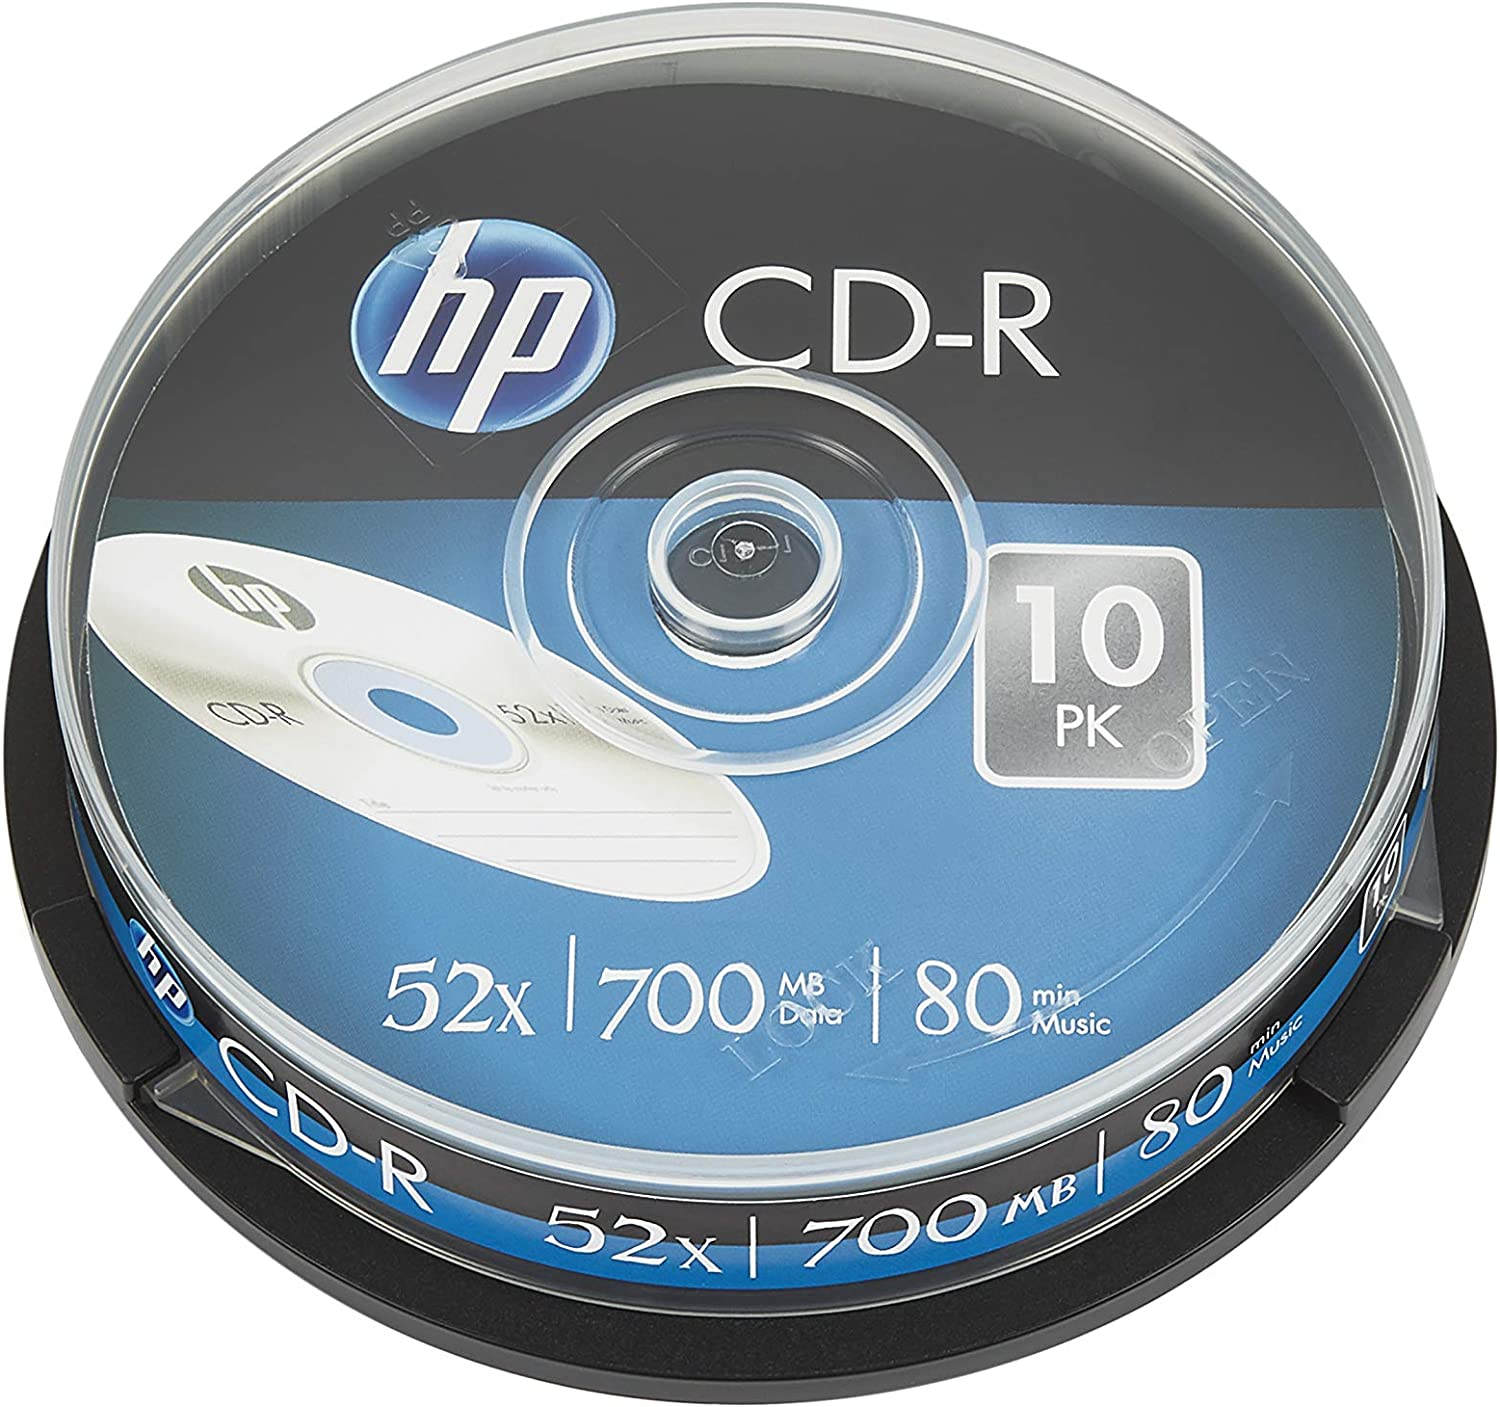 HP CD-R 52x Blank Discs (80 Minutes/700 MB) - 10 Disc Cake Box